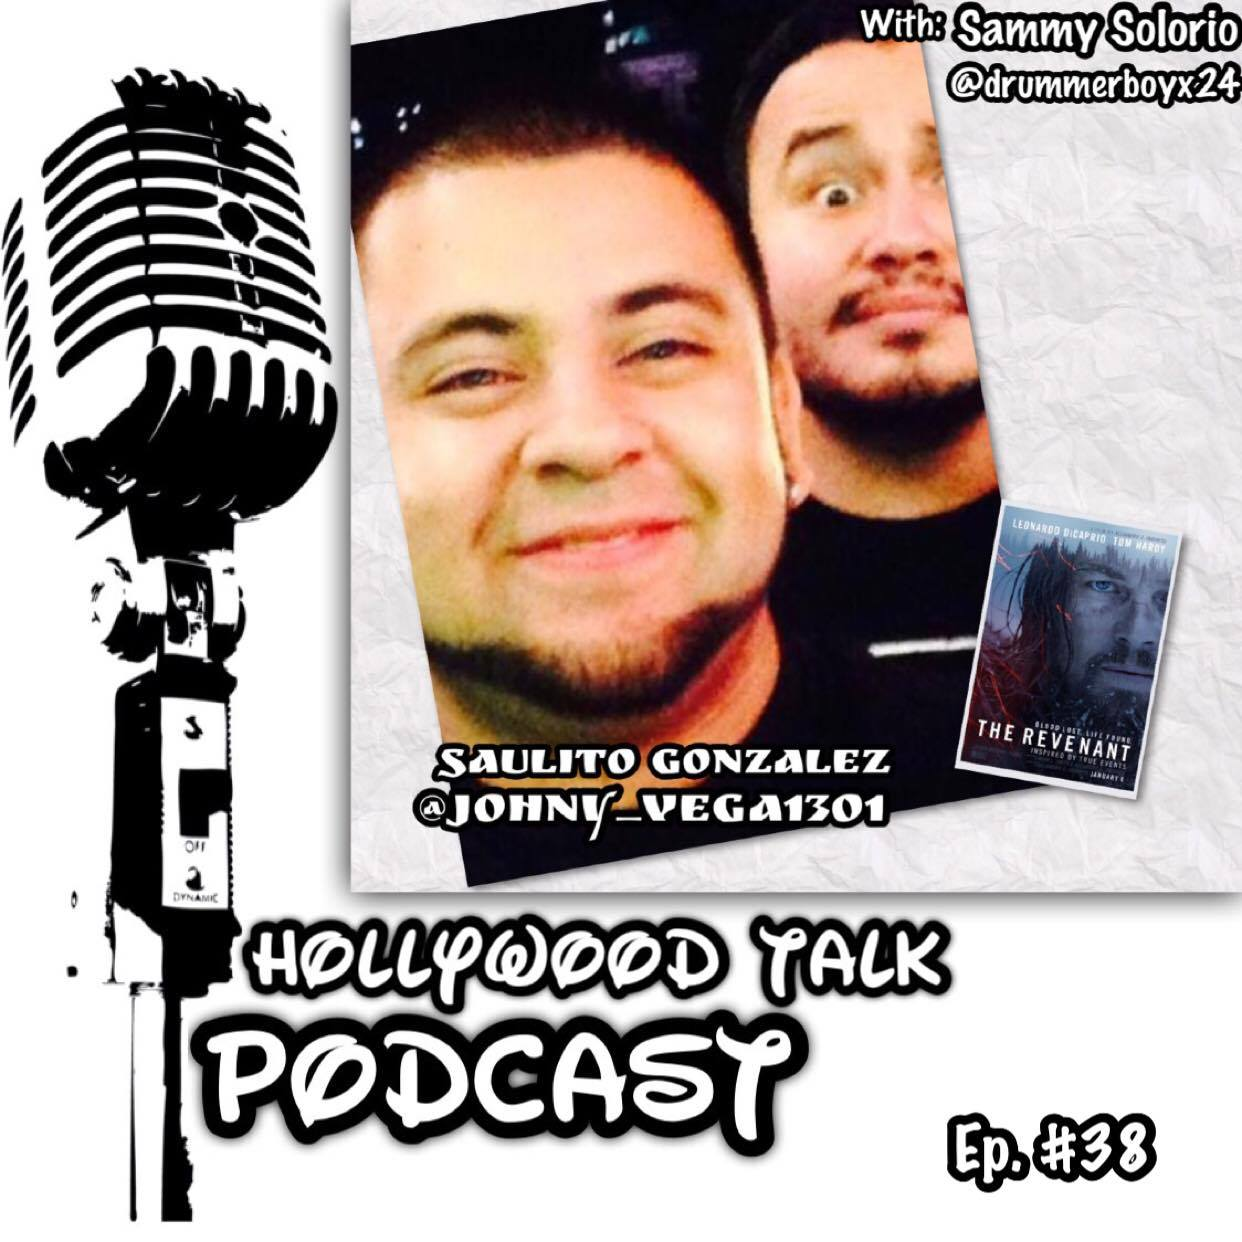 #38 HTP with Sammy Solorio - THE REVENANT Movie Review (Spoiler Alert) - @johnny_vega1301